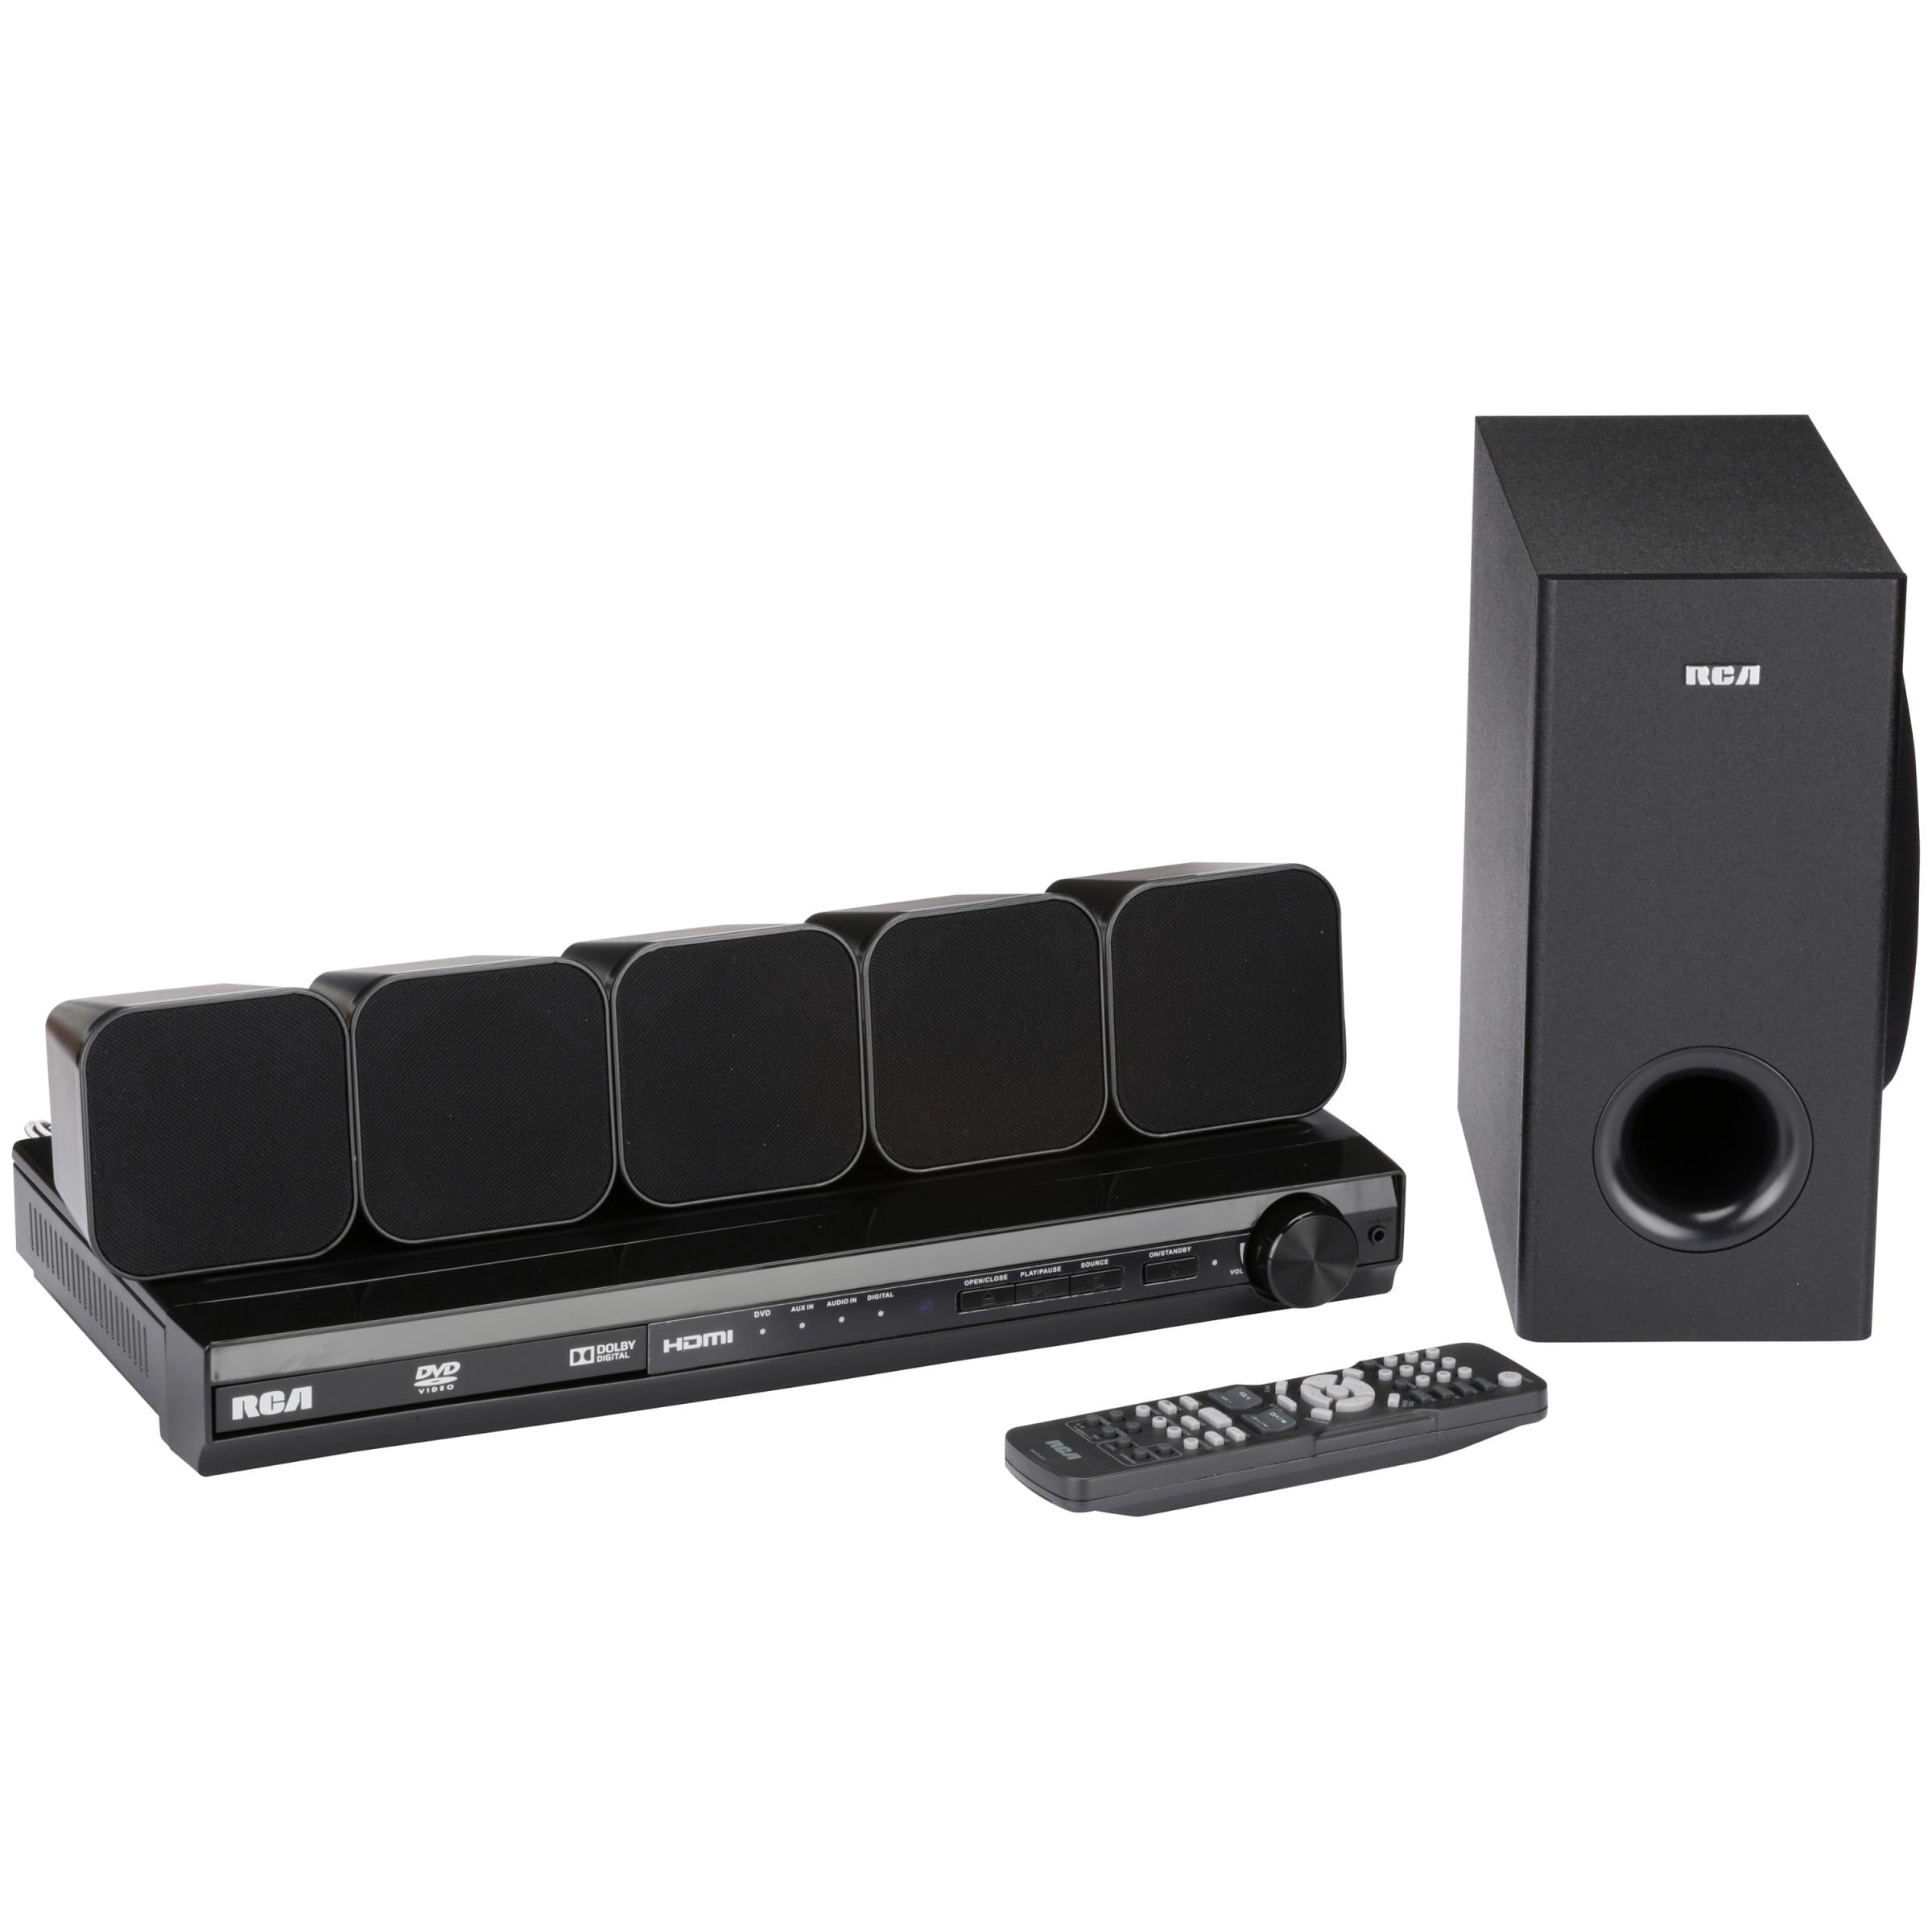 Rca Dvd Home Theater System With Hdmi 1080p Output 8 Pc Box. Rca Dvd Home Theater System With Hdmi 1080p Output 8 Pc Box. Wiring. Hdmi Home Theatre System Schematic At Scoala.co